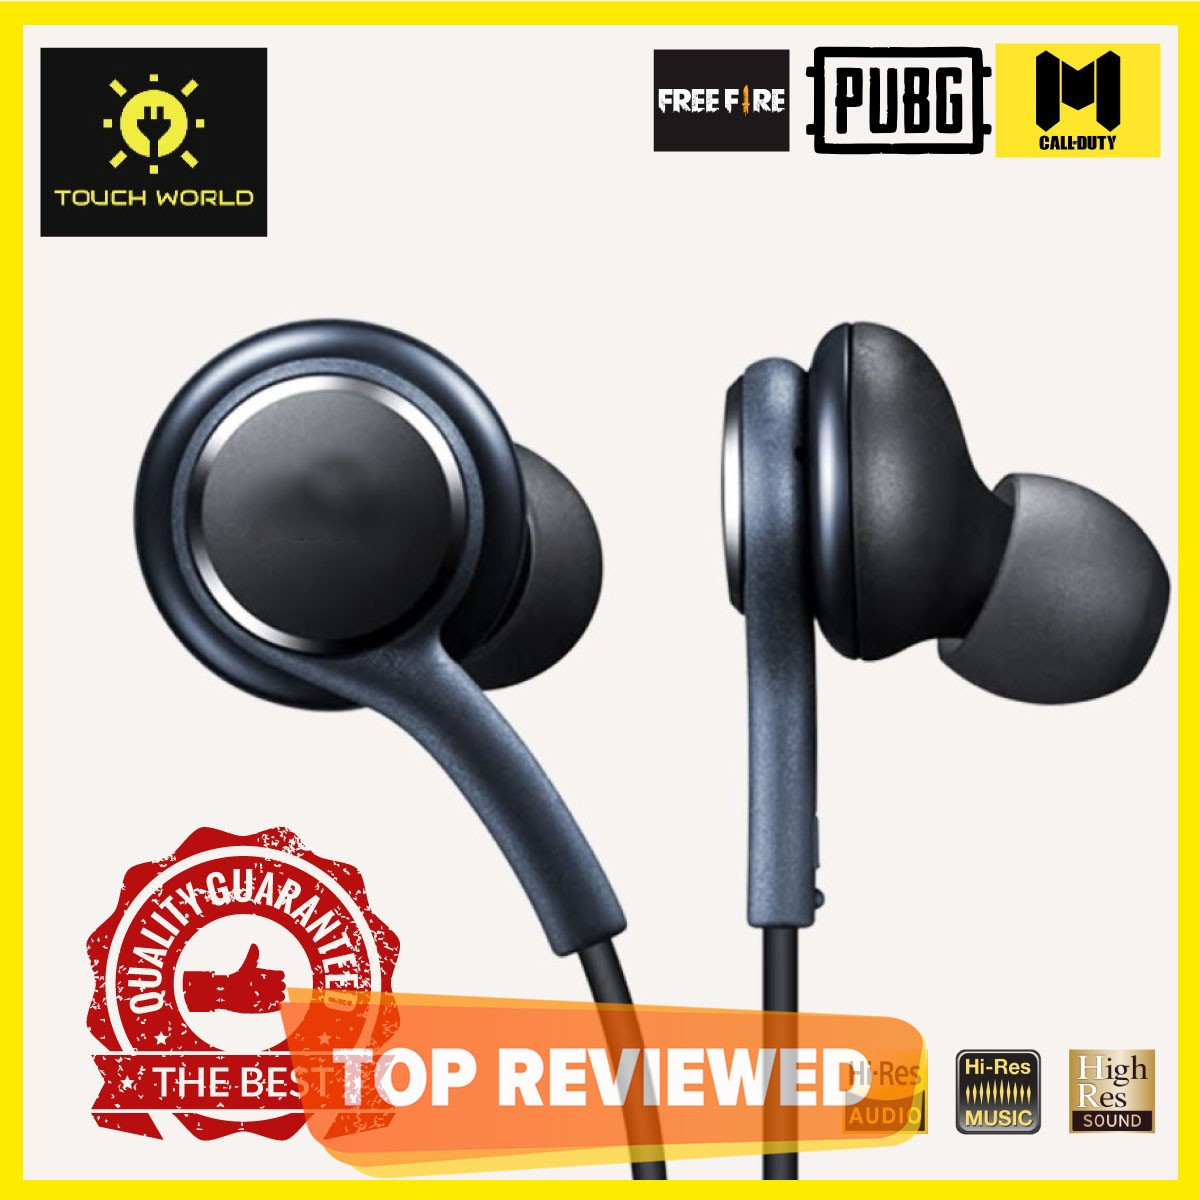 TOUCH WORLD - Best Universal Original Handsfree - Quality Stereo Bass Sound for PUBG Gamming Watching Movies  - Wired with Mic Super comfortable handfree for girls men - 3.5mm jack Earphones  Ear Buds , Head phones for Android Mobile Phones Tablet PC